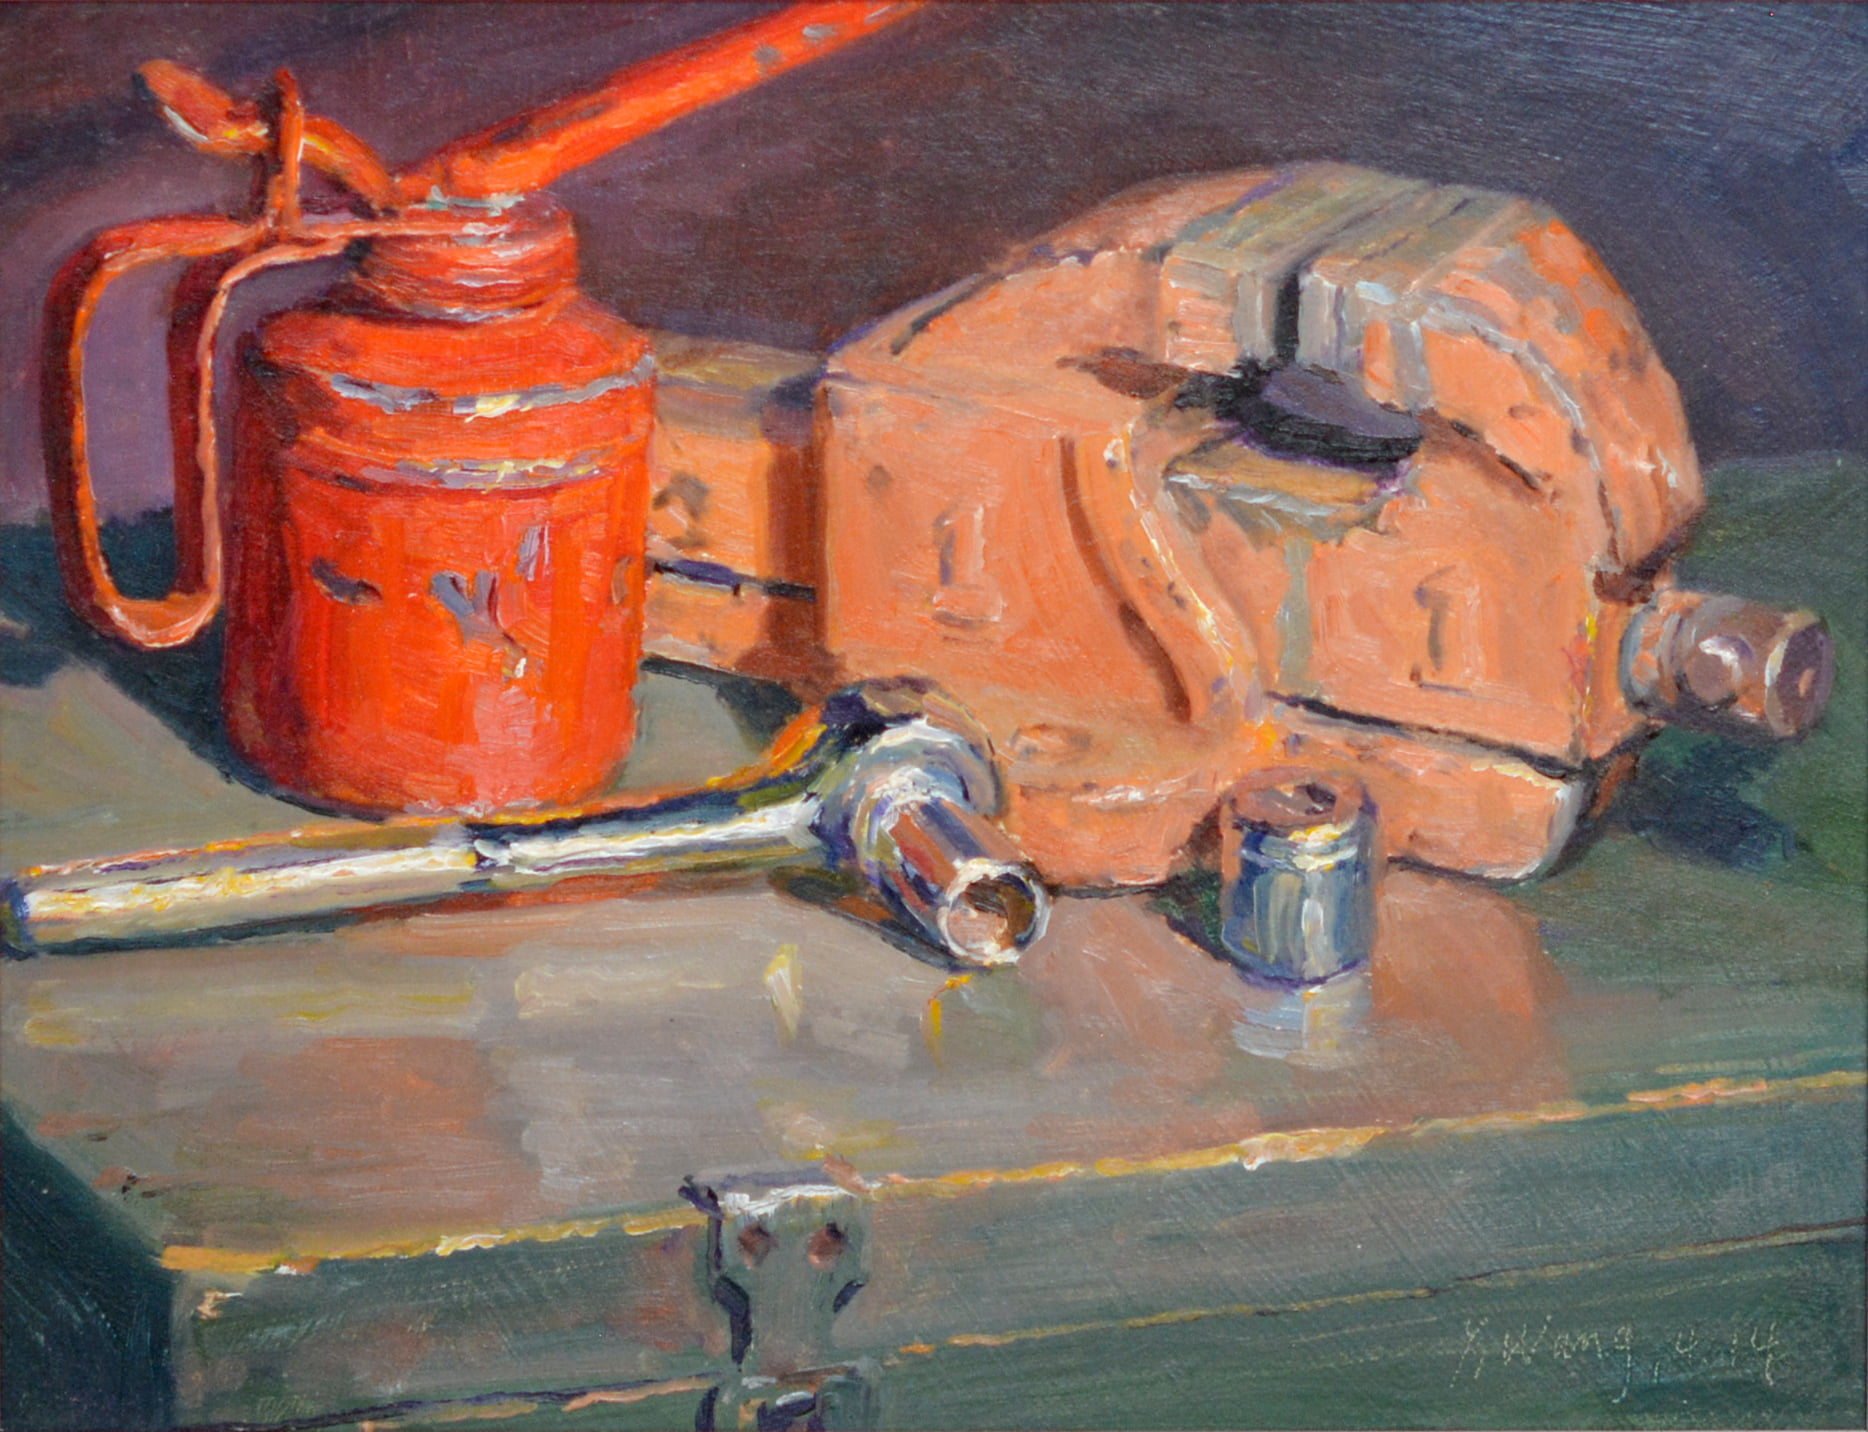 15-The Oil Can